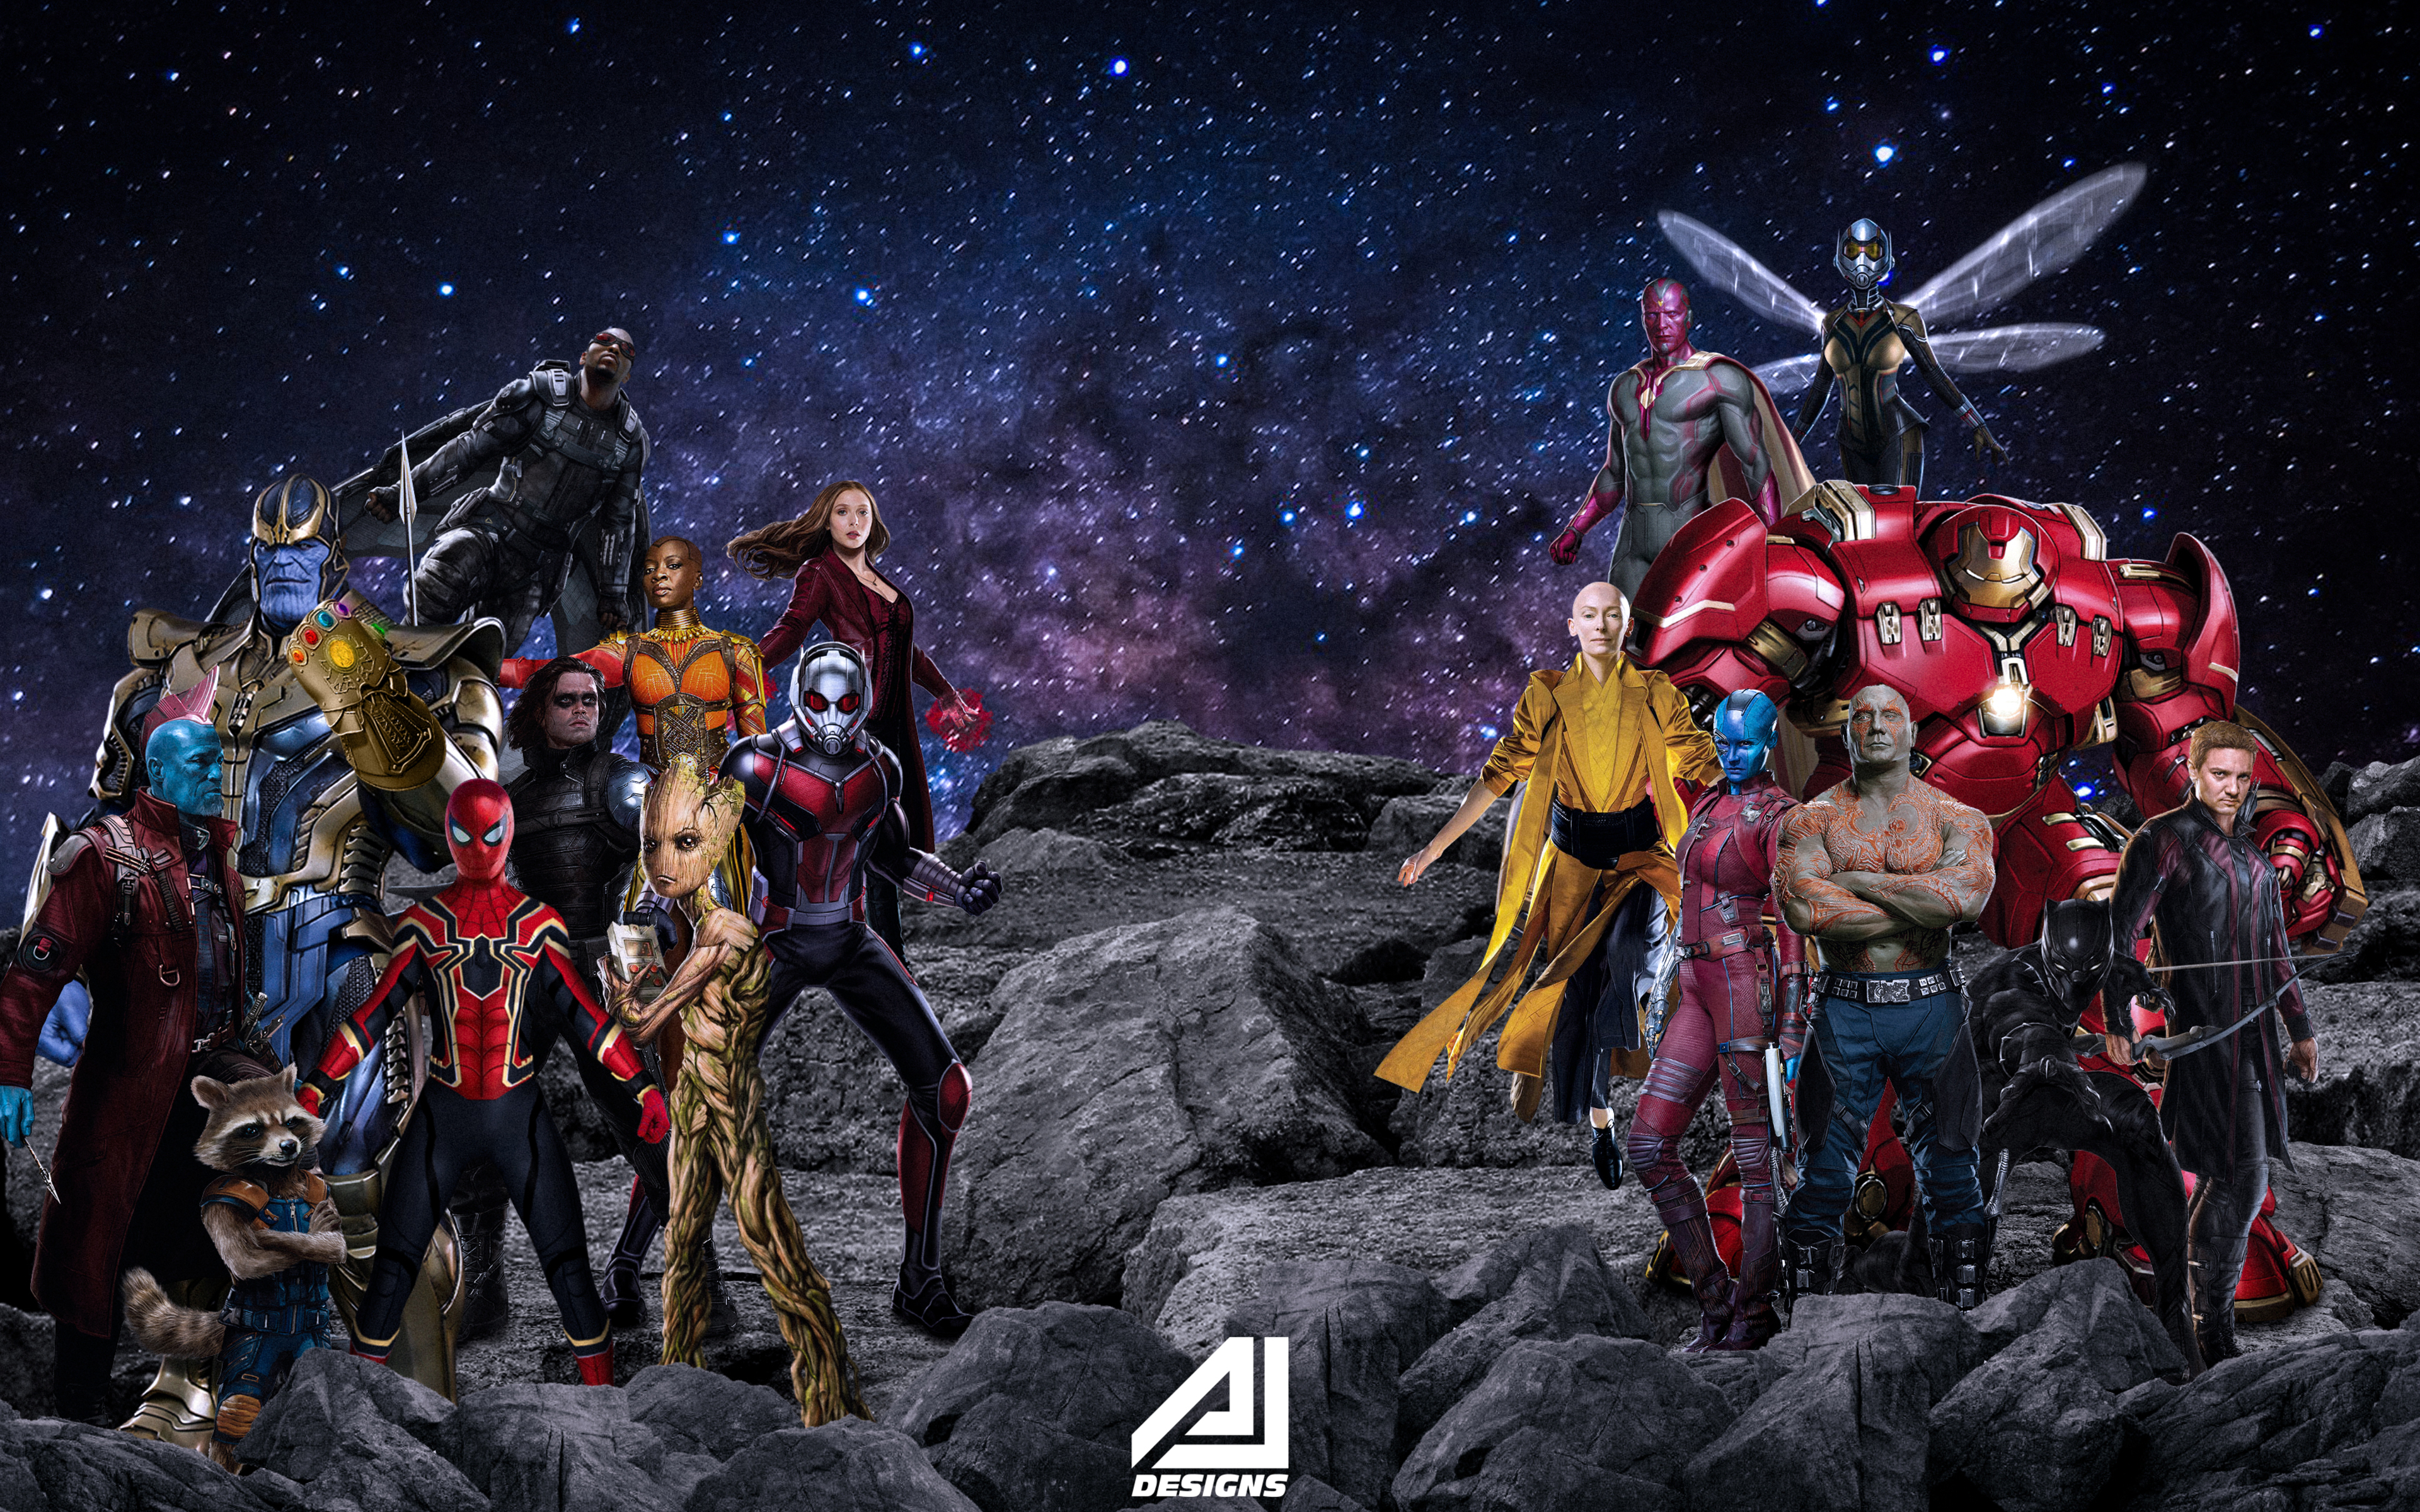 3840x2400 marvel studios character artwork 4k hd 4k wallpapers images backgrounds photos and - Marvel hd wallpapers 4k ...